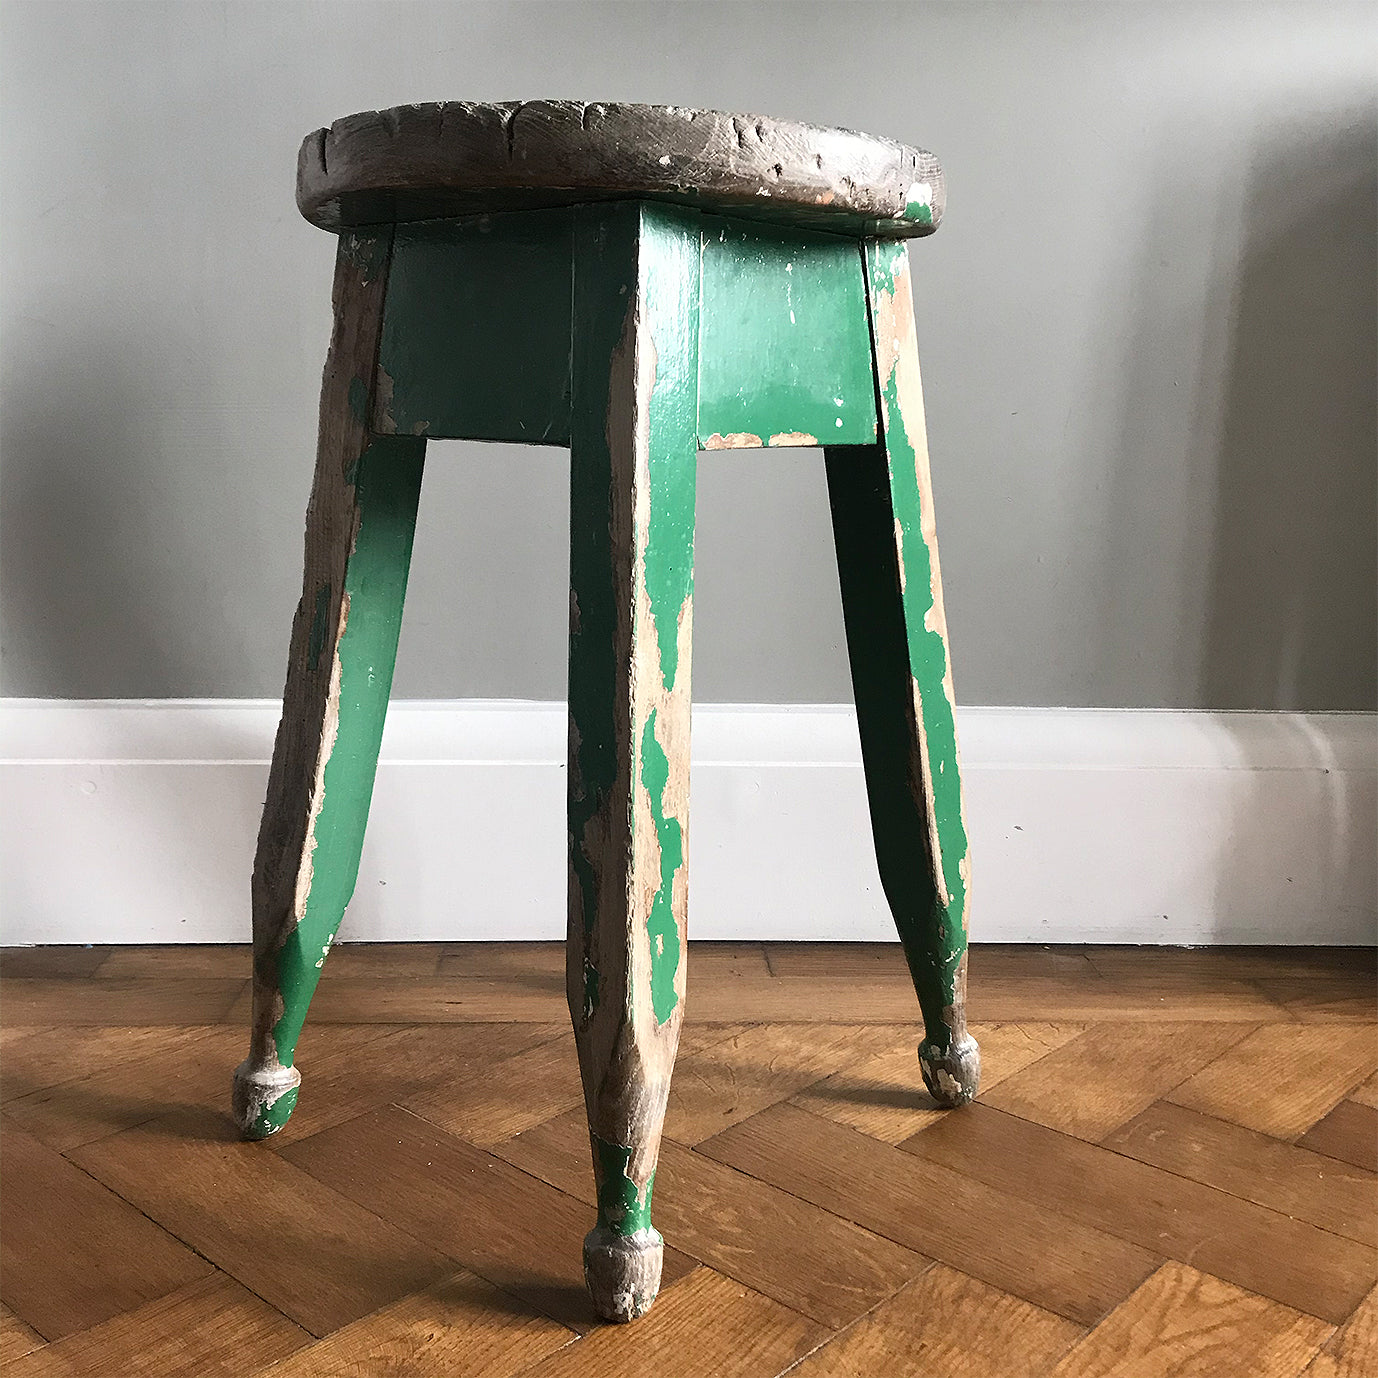 Good looking Vintage Painted Stool. Fantastic age age related wear and patina yet still totally solid. The green paint has worn and chipped away giving the stool that bang on look - SHOP NOW - www.intovintage.co.uk